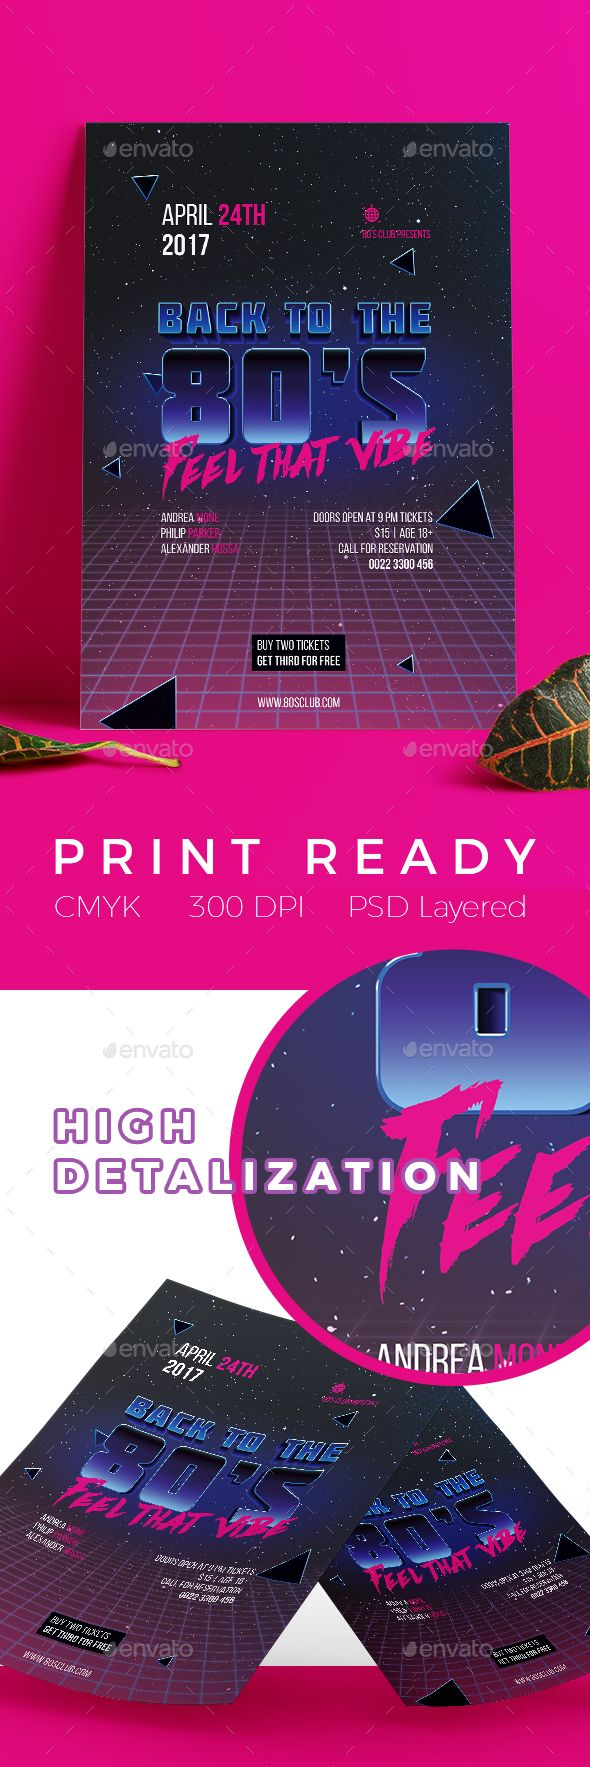 A Modern Professional And Clean Flyer Poster Template Will